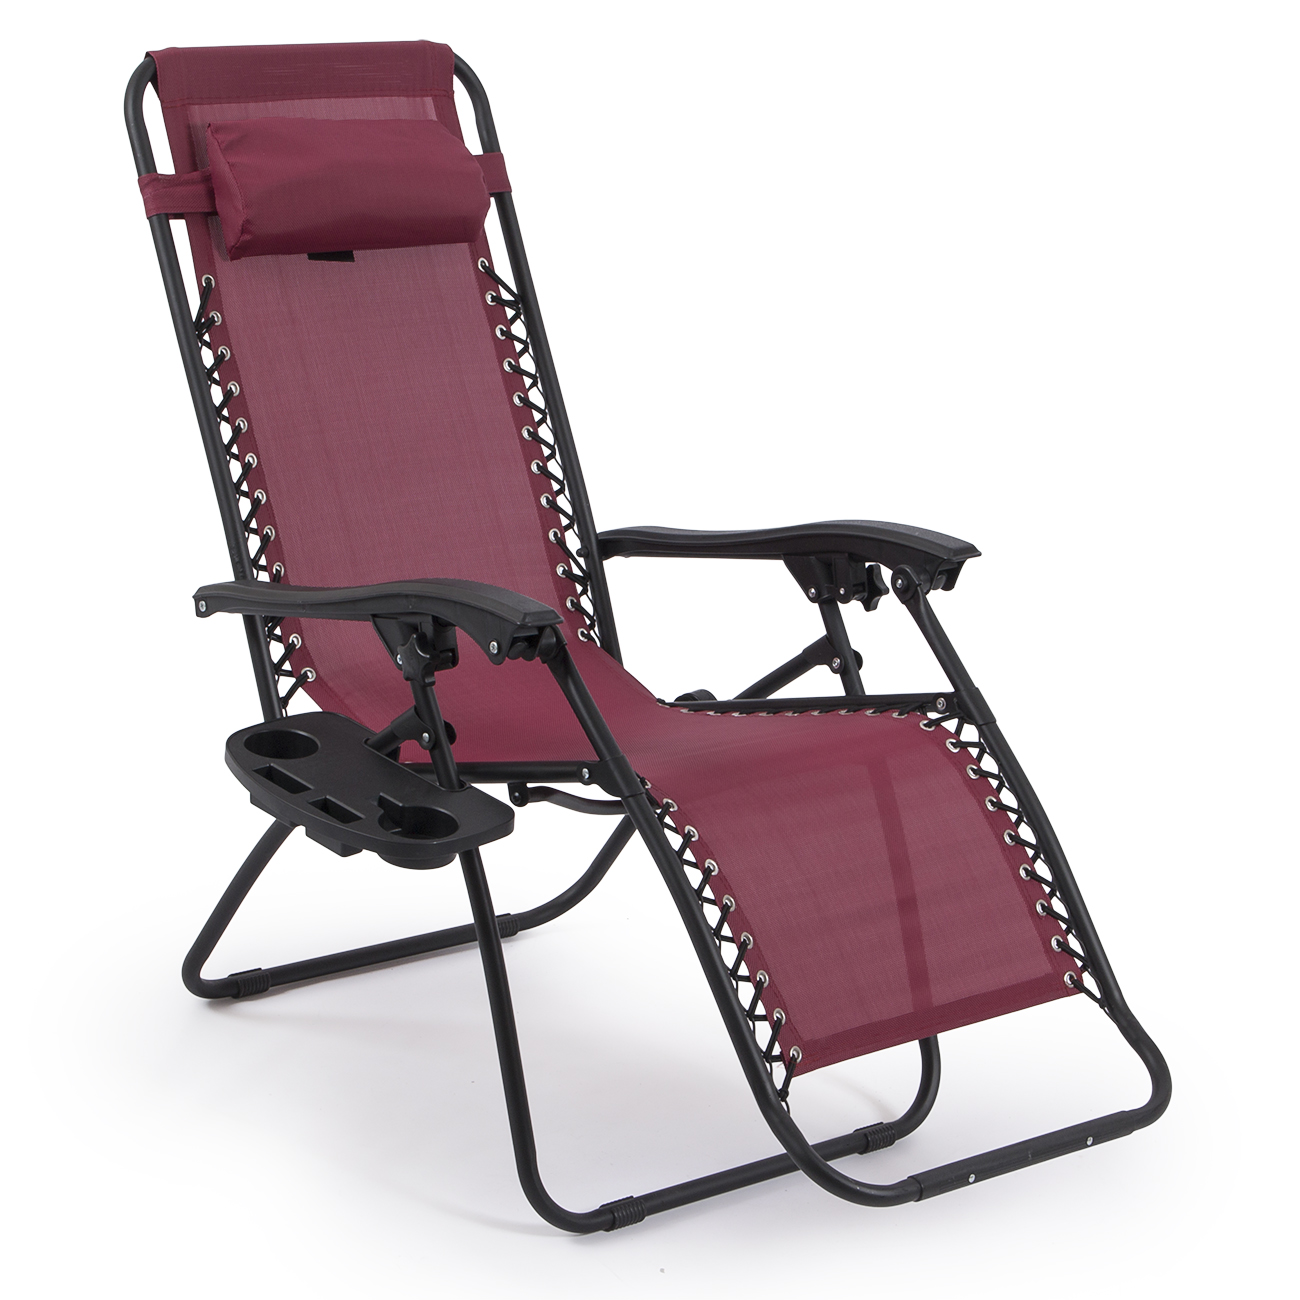 2-Folding-Zero-Gravity-Reclining-Lounge-Chairs-Utility-  sc 1 st  eBay & 2 Folding Zero Gravity Reclining Lounge Chairs+Utility Tray ... islam-shia.org